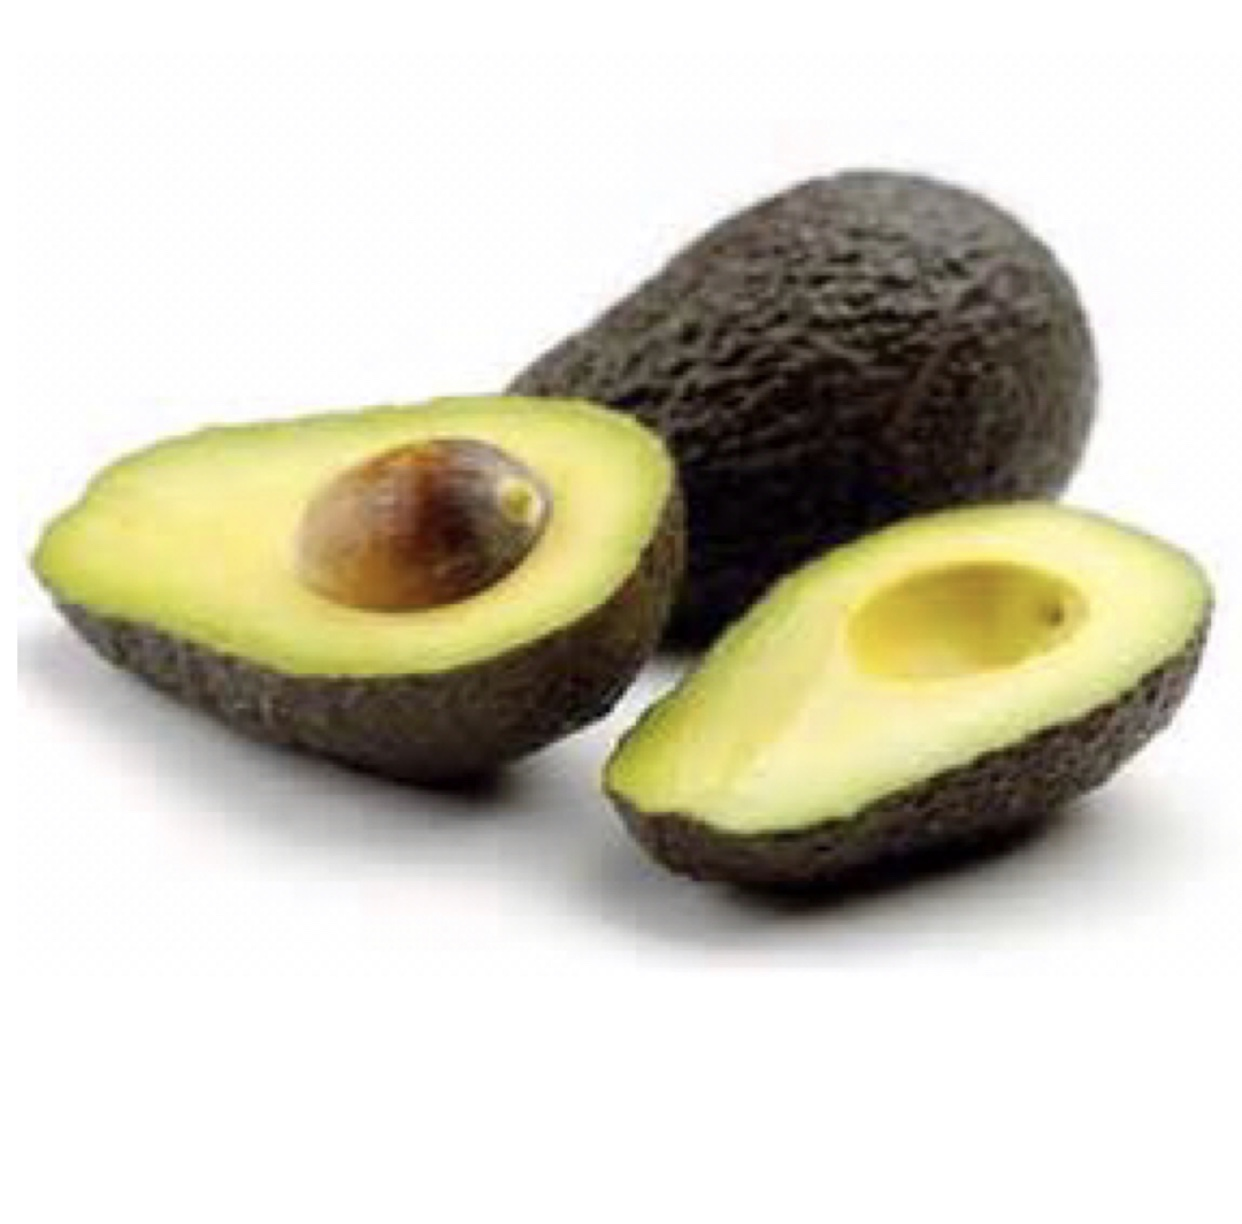 Featured Fruit Friday: Avocados